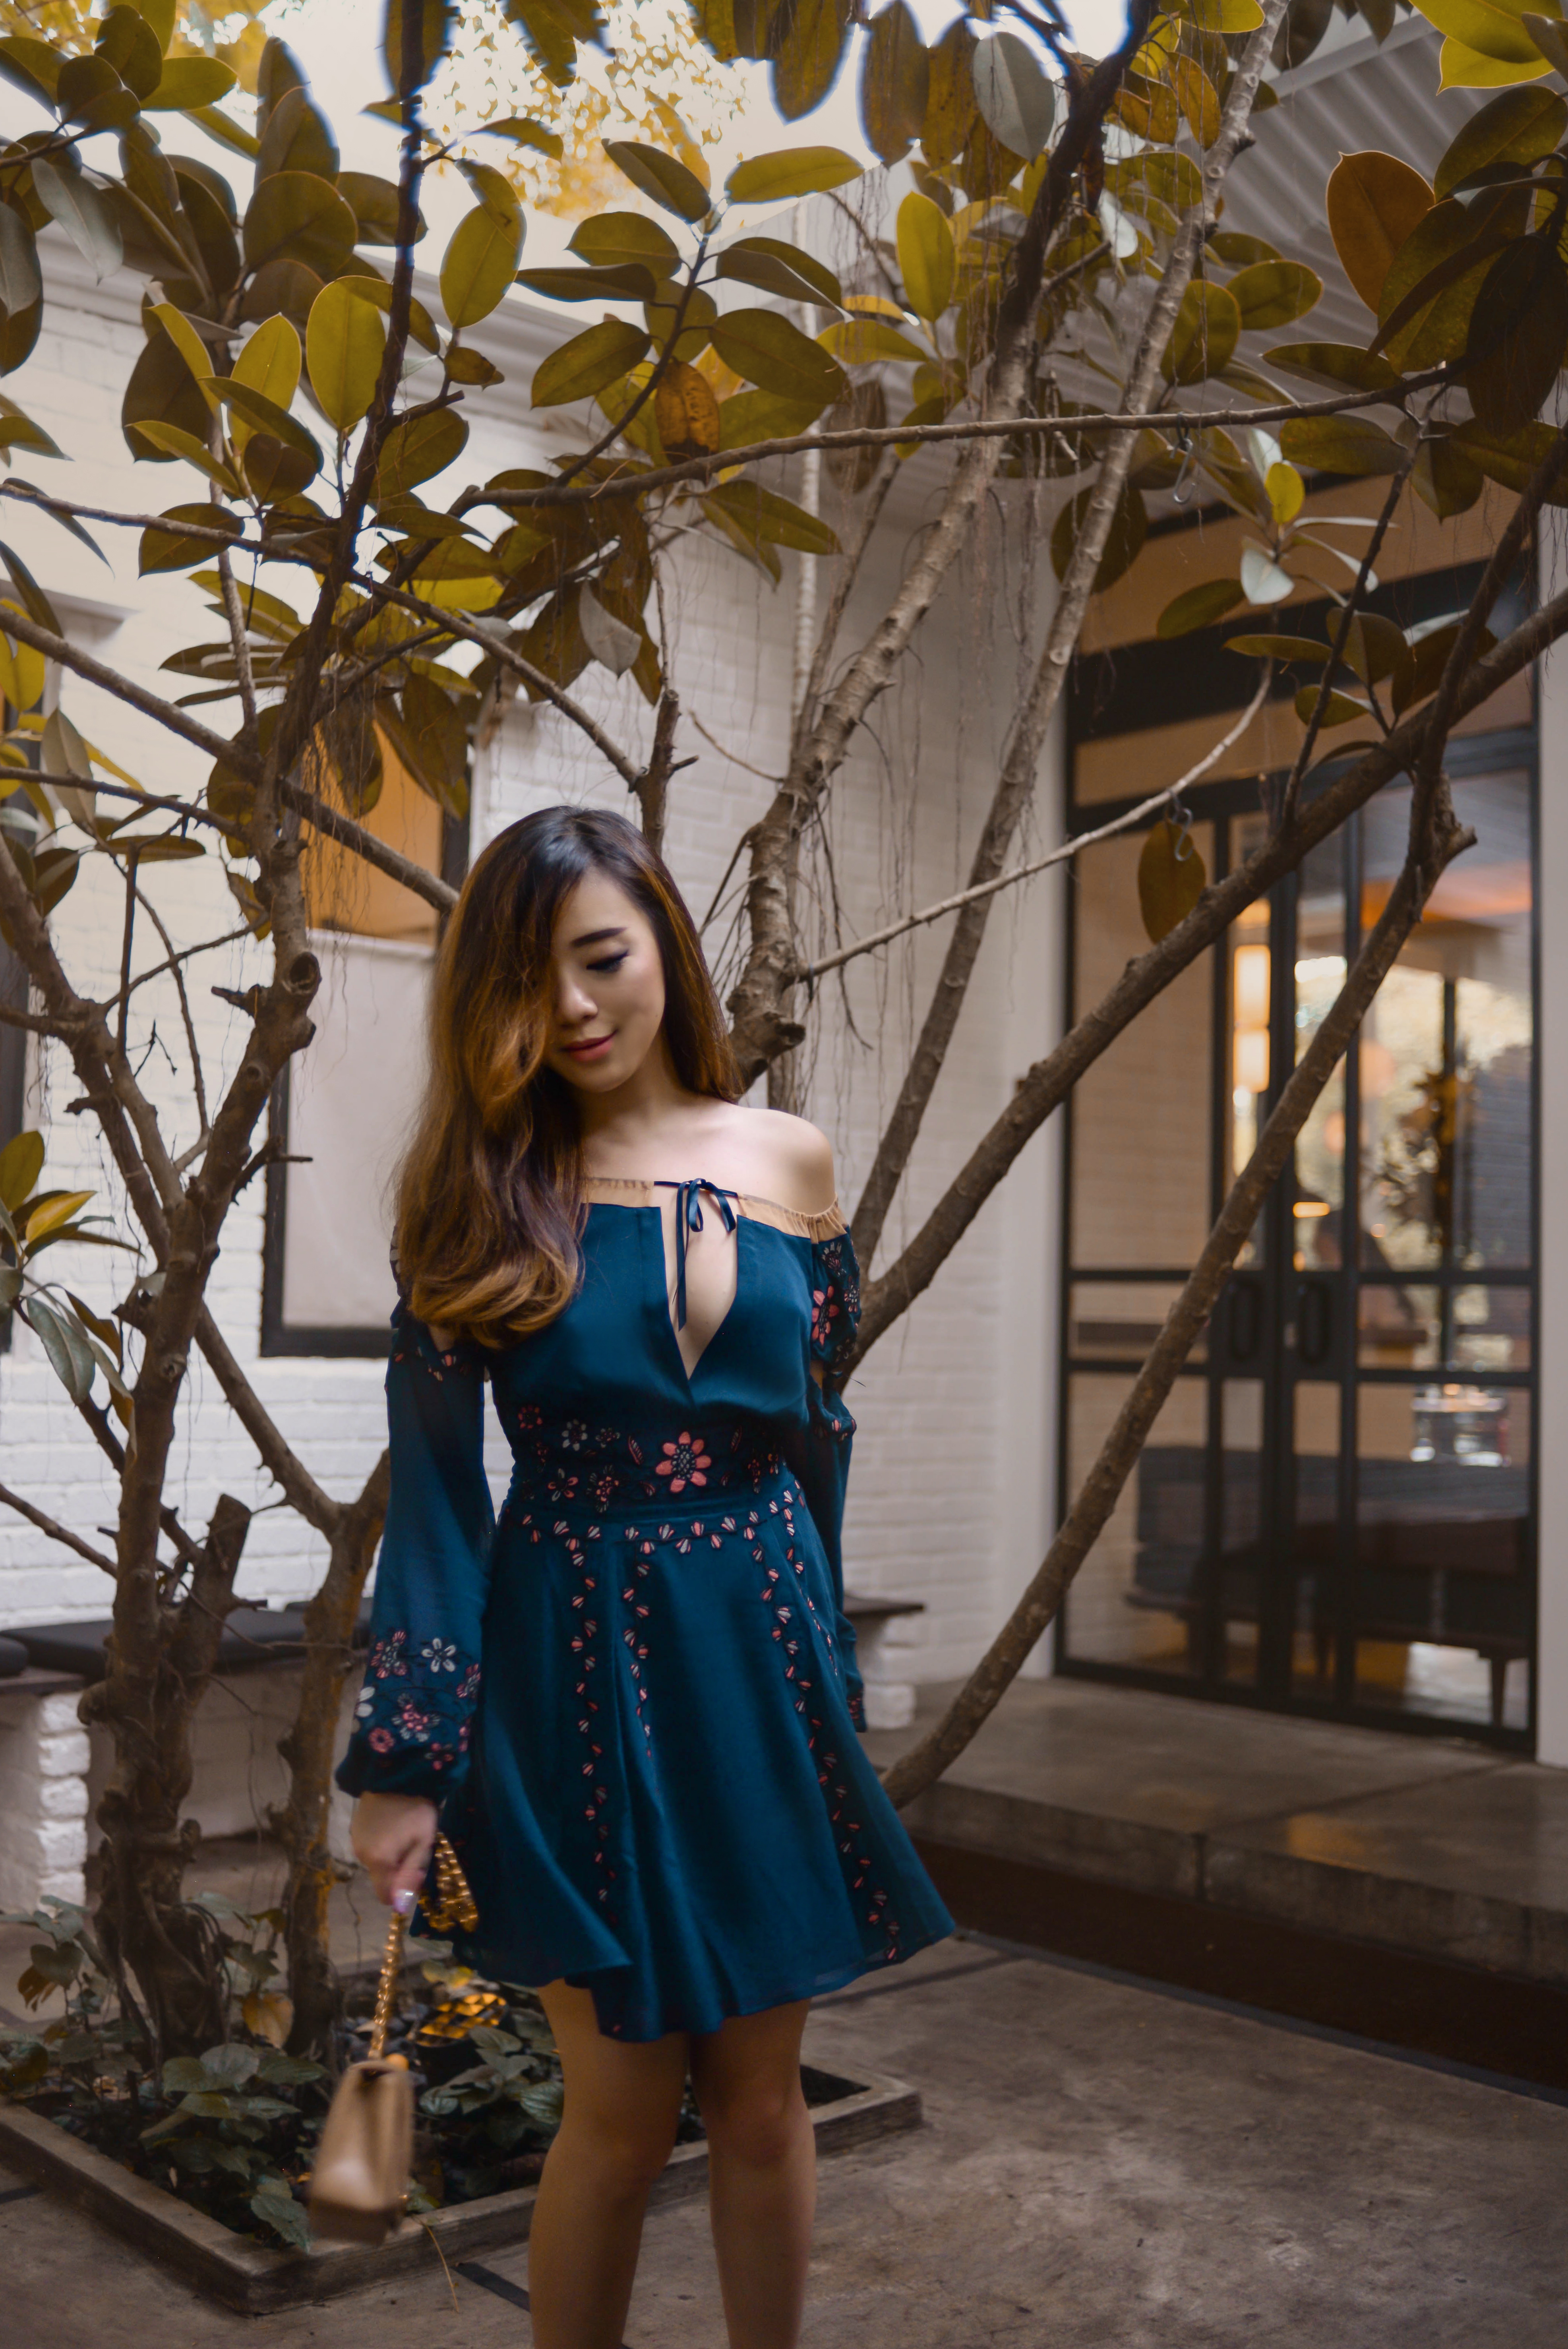 willabelle-ong-paledivision-street-style-fashion-travel-lifestyle-blog-singapore-australia-outfit-editorial-revolve-forloveandlemons-niccola-mini-dress-navy-floral-sheer-3